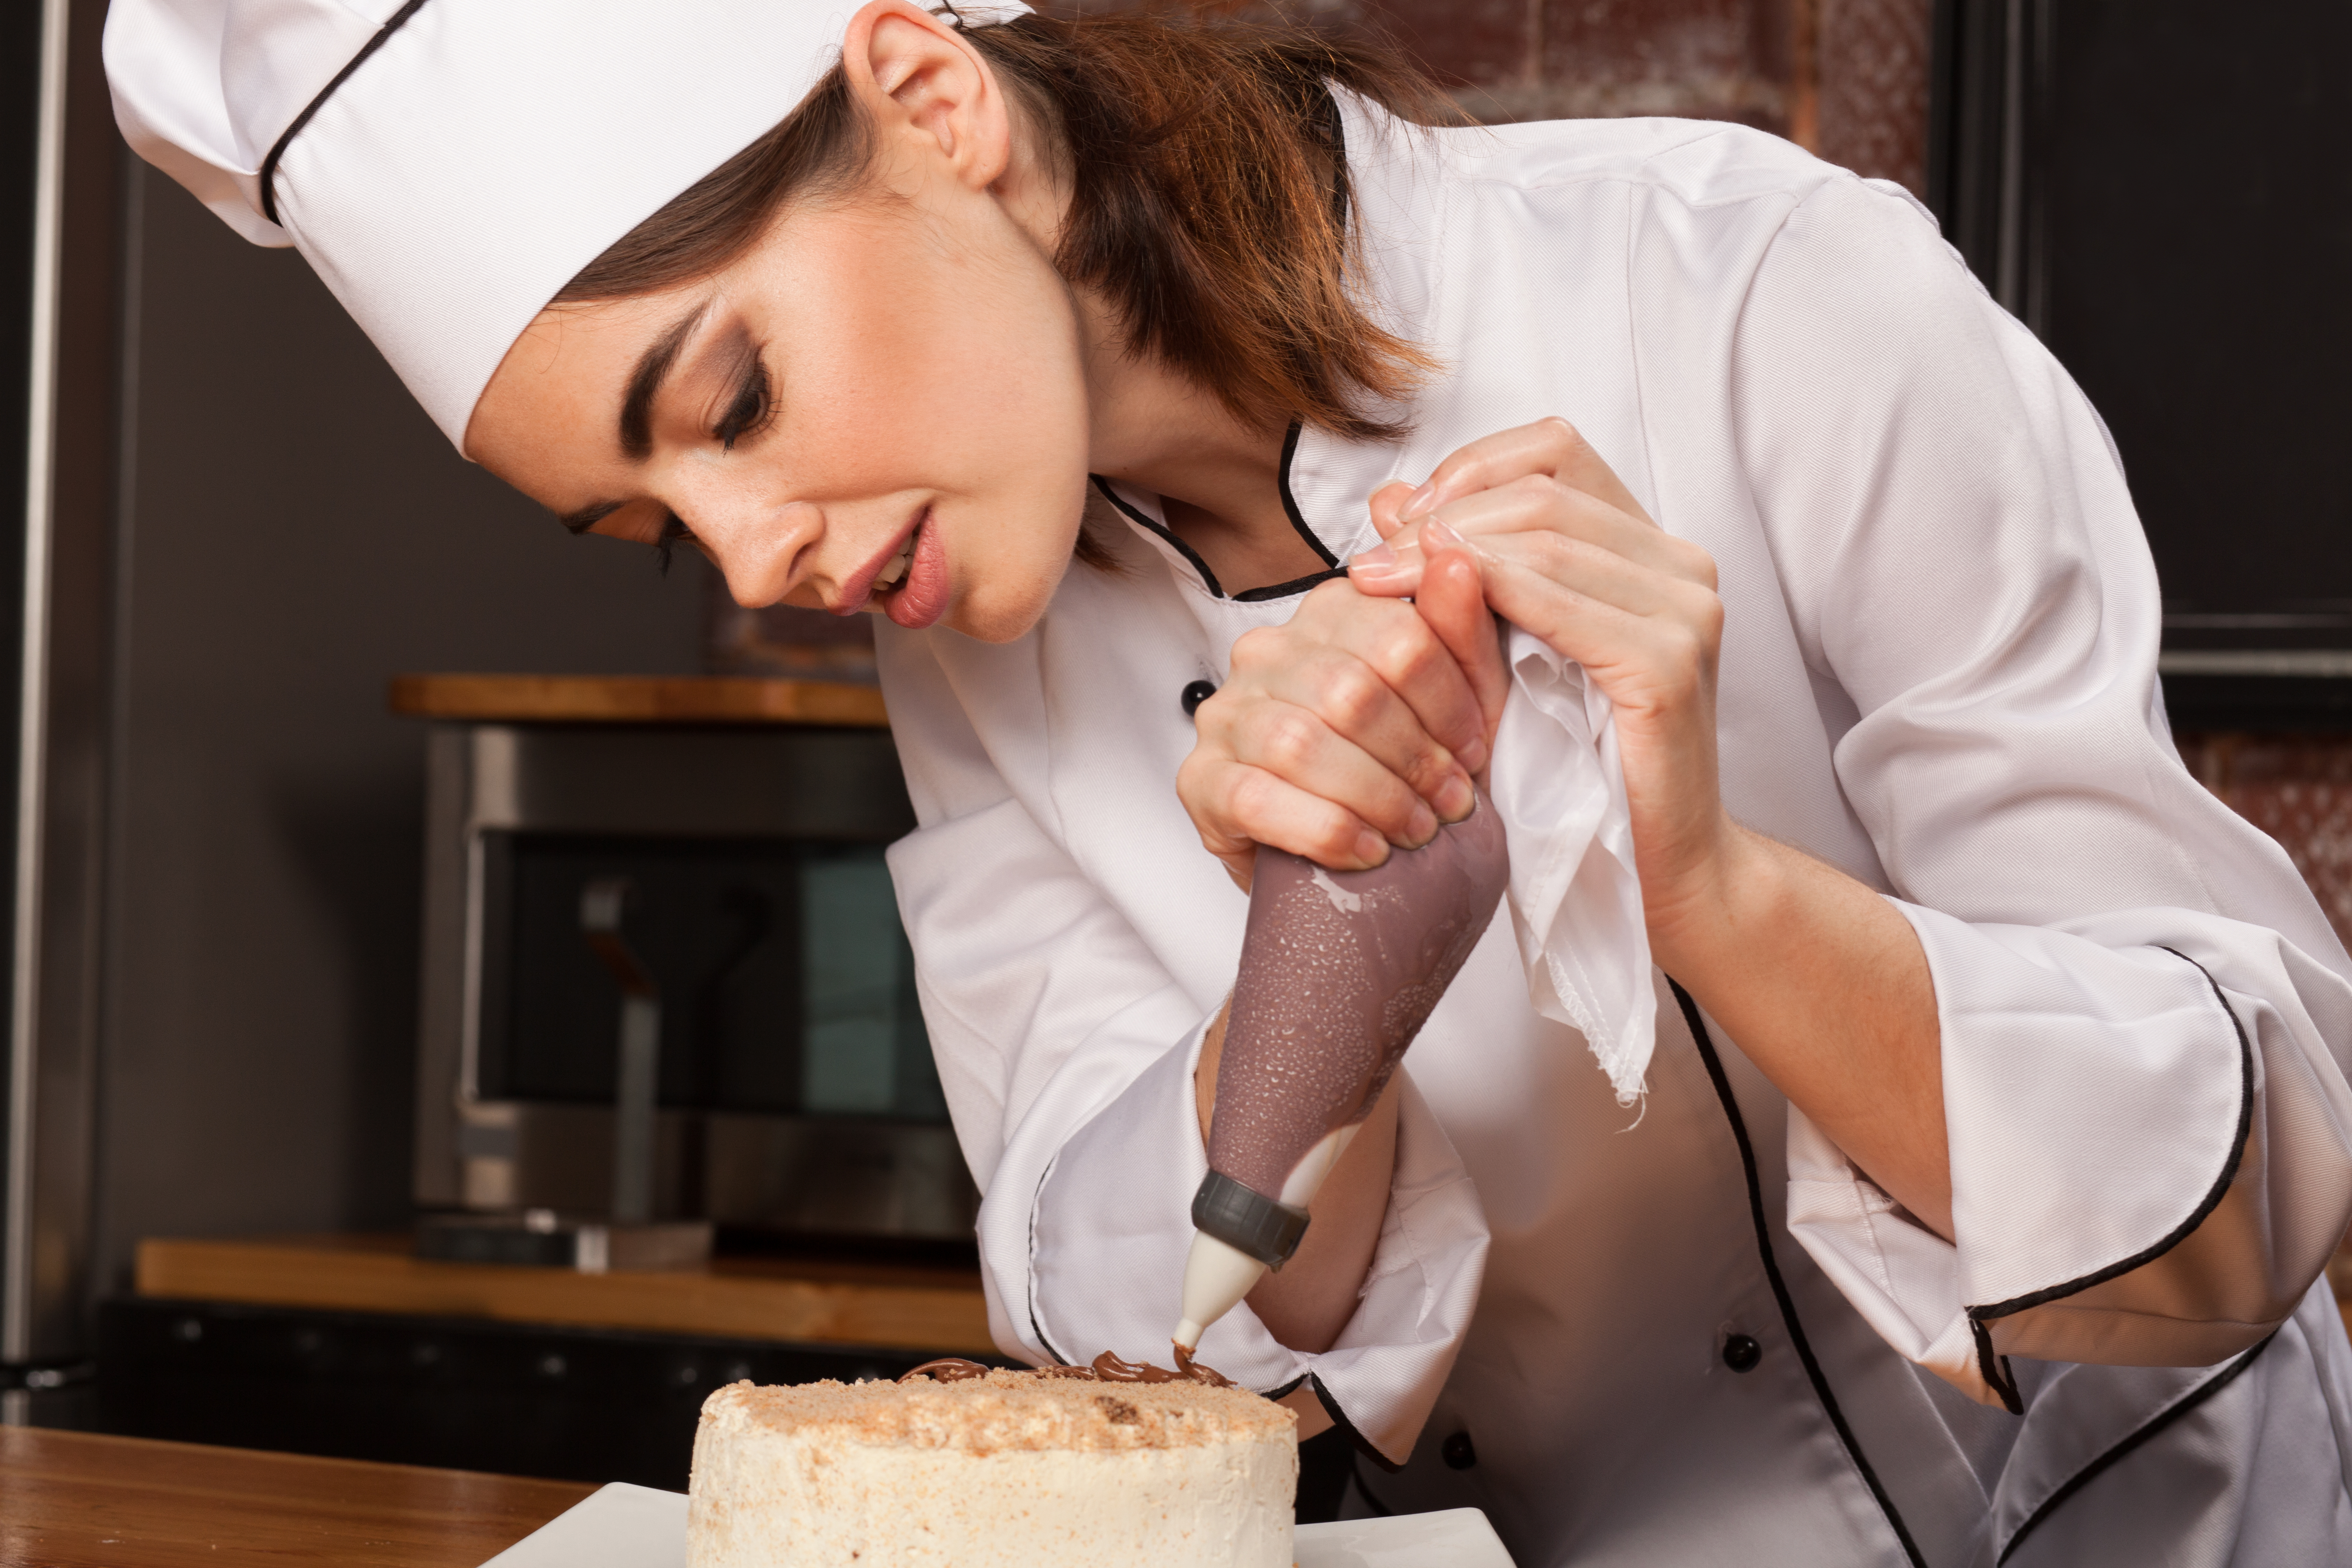 Female chef cook preparing a sweet cake in the kitchen